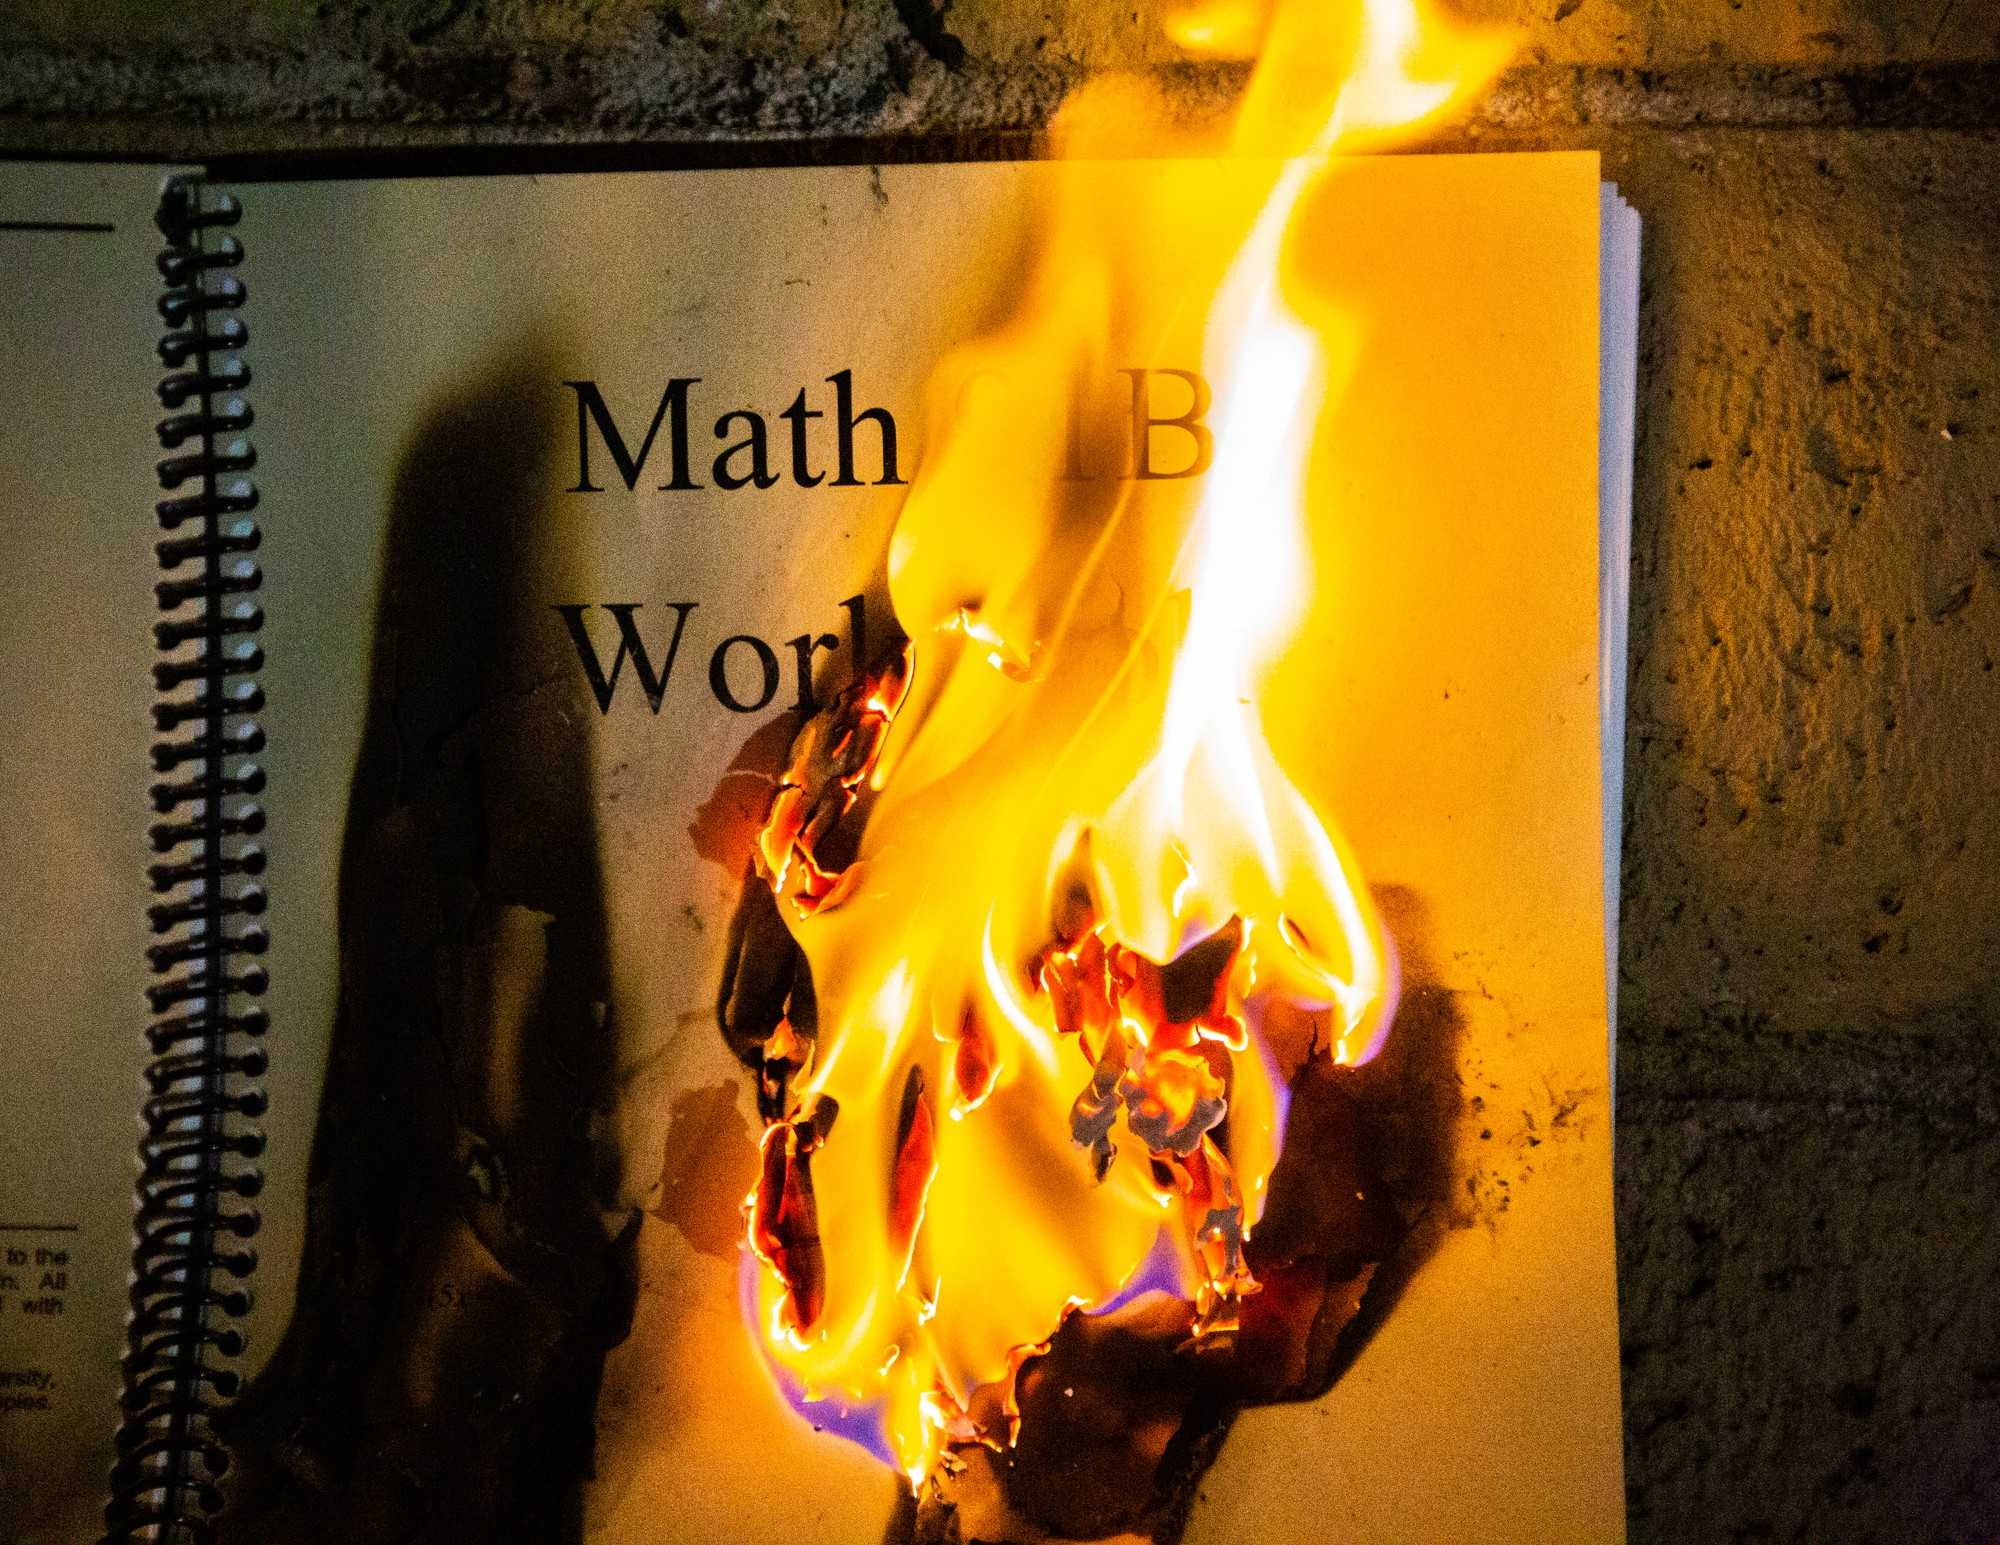 A math manual book is on fire.